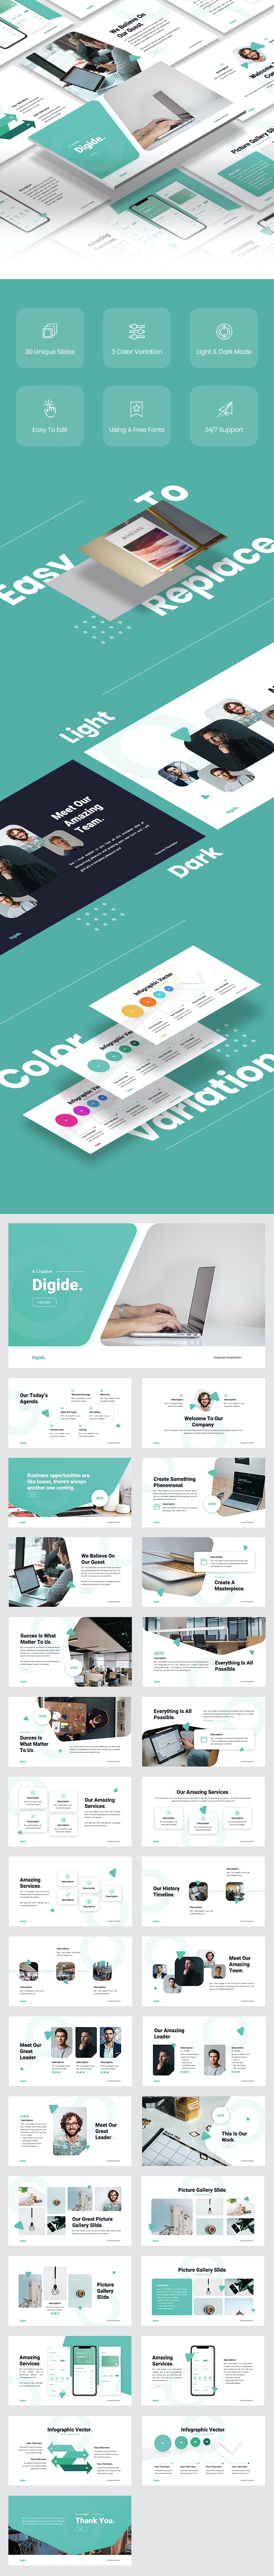 Digide - Startup PowerPoint Template - Business PowerPoint Templates